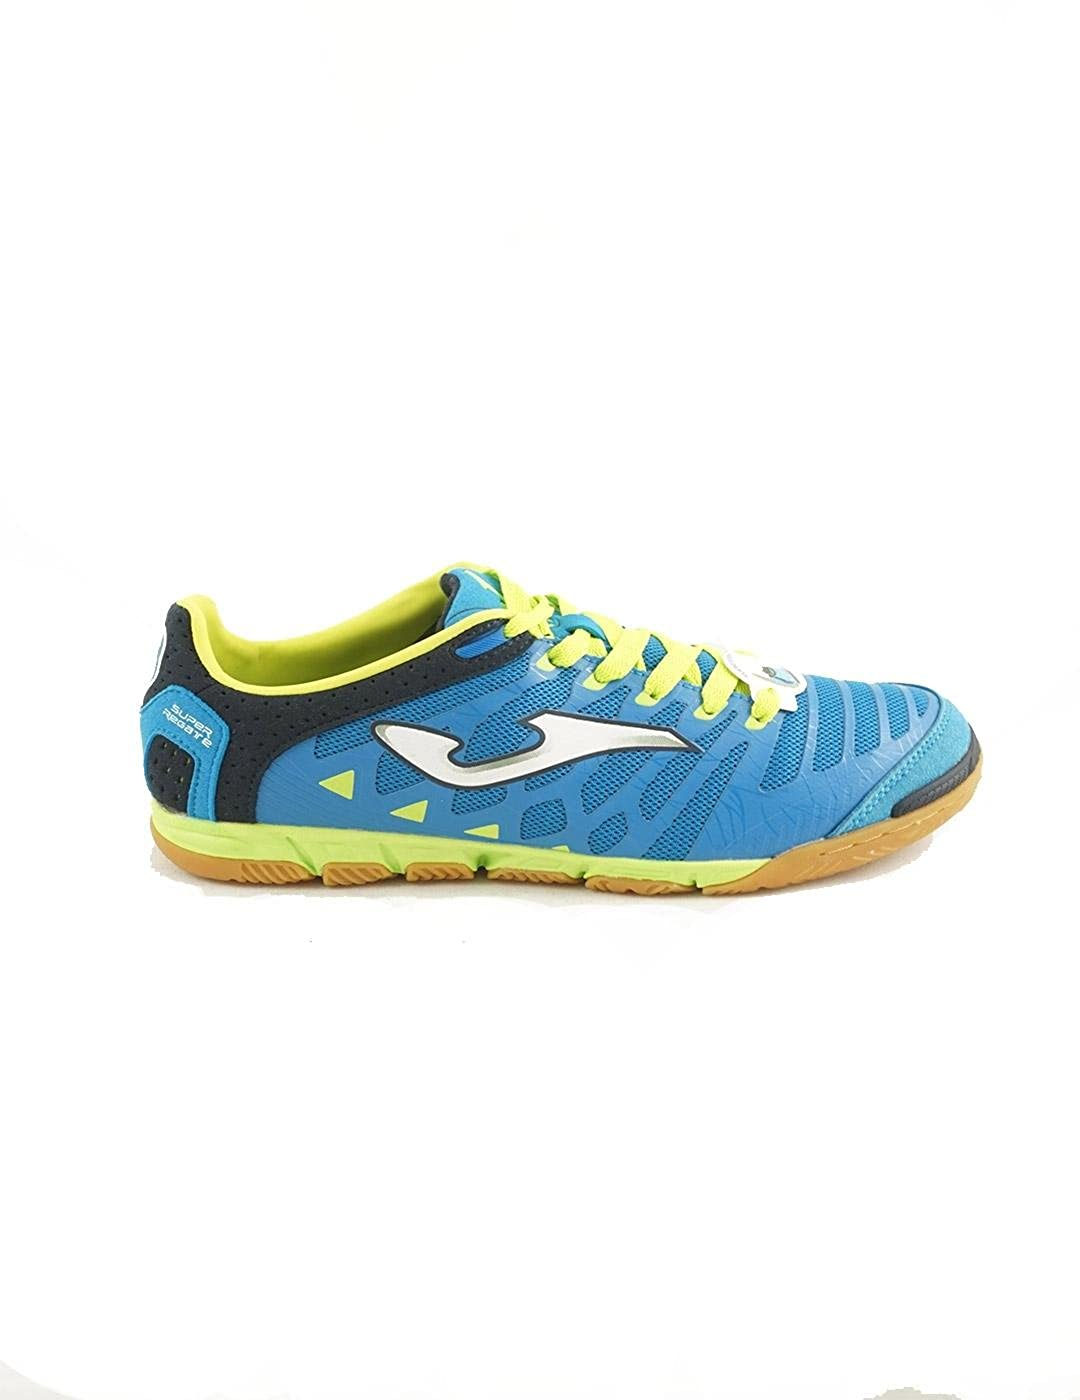 Super Regate Microfibre Indoor Football Trainers - Blau Lime - Größe 9.5